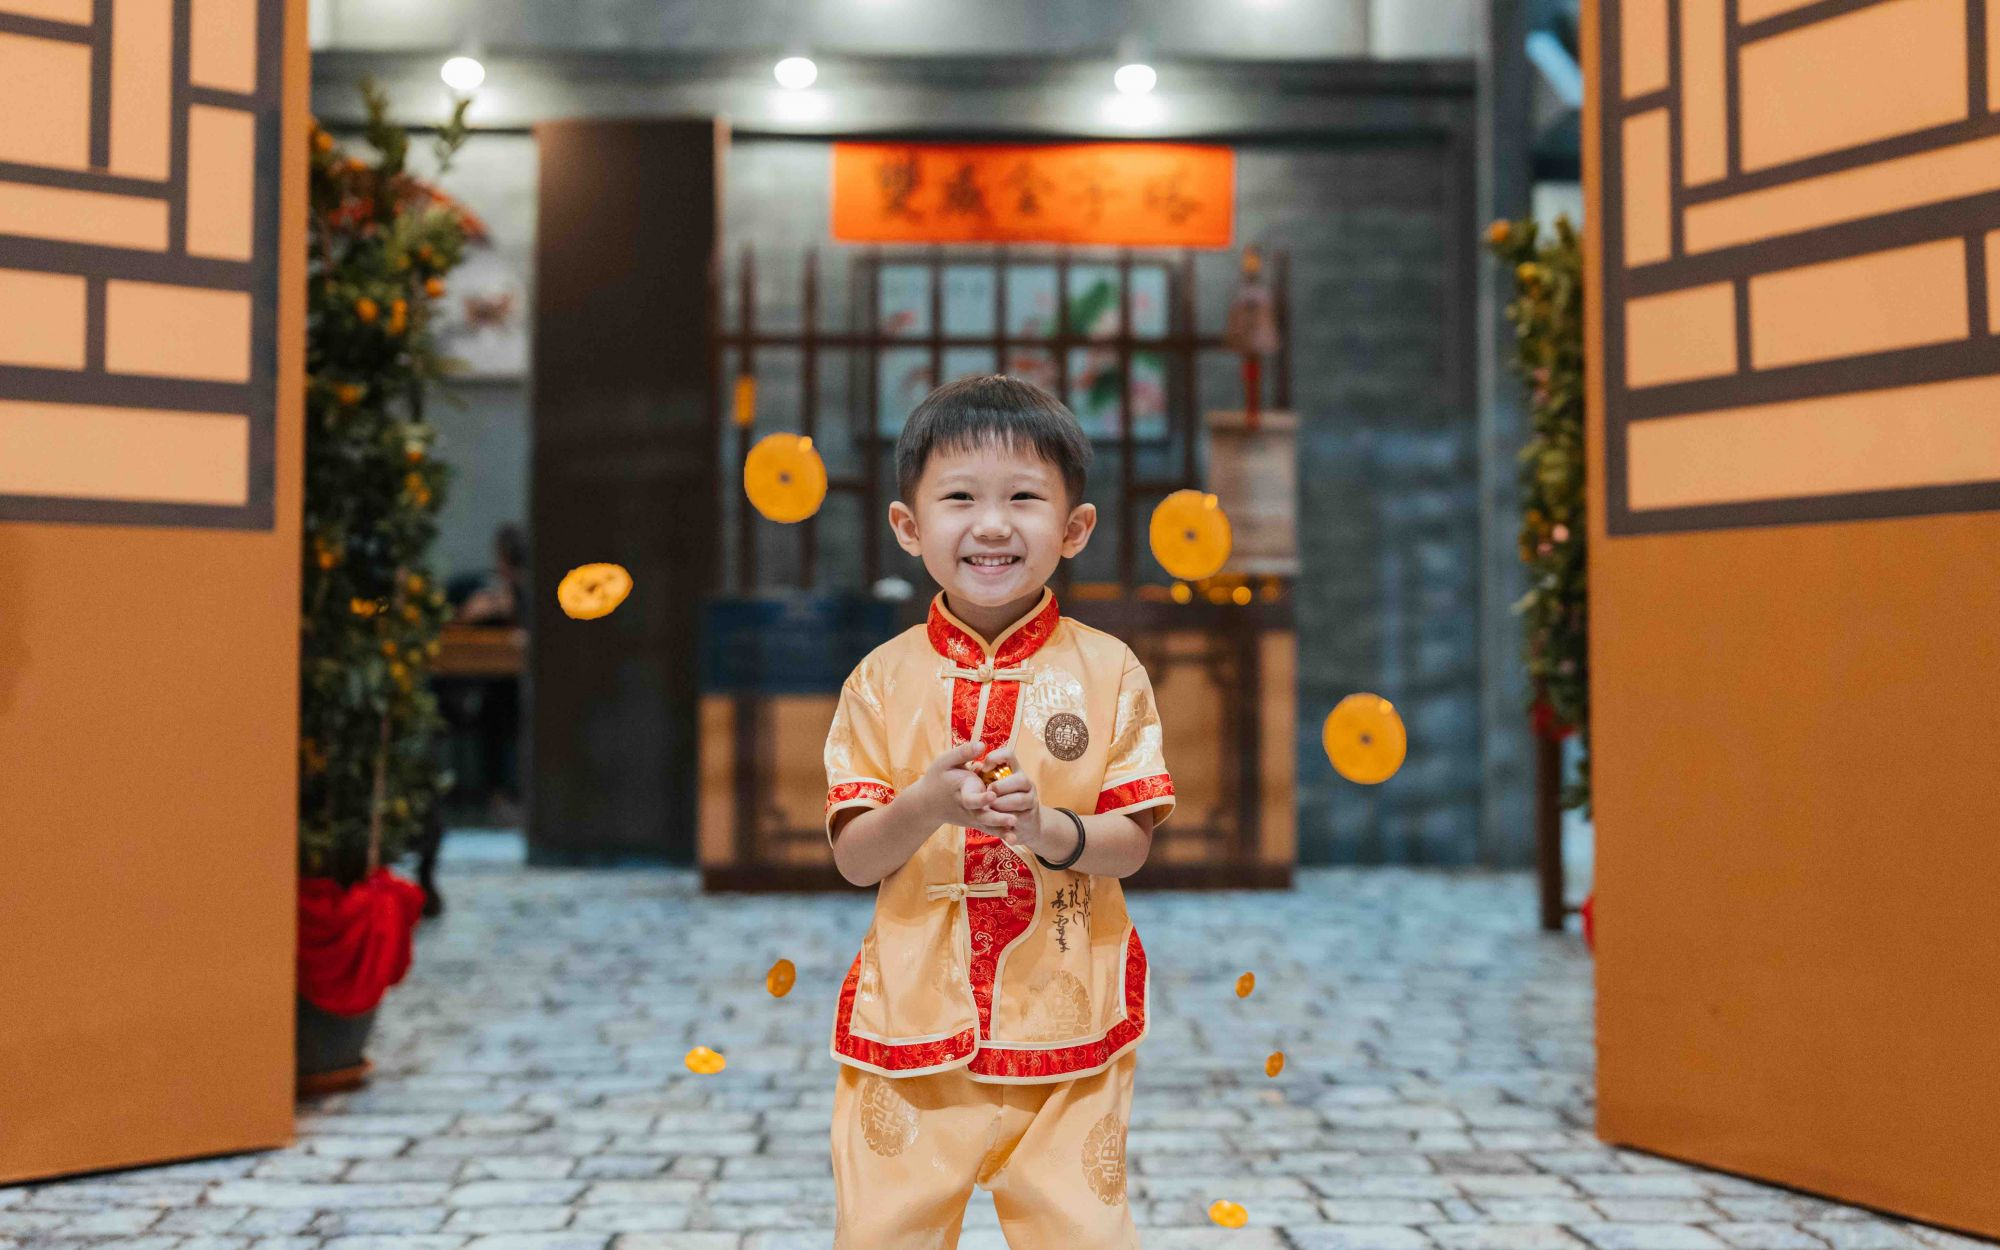 The Best Chinese New Year 2020 Decorations In KL & PJ Shopping Malls